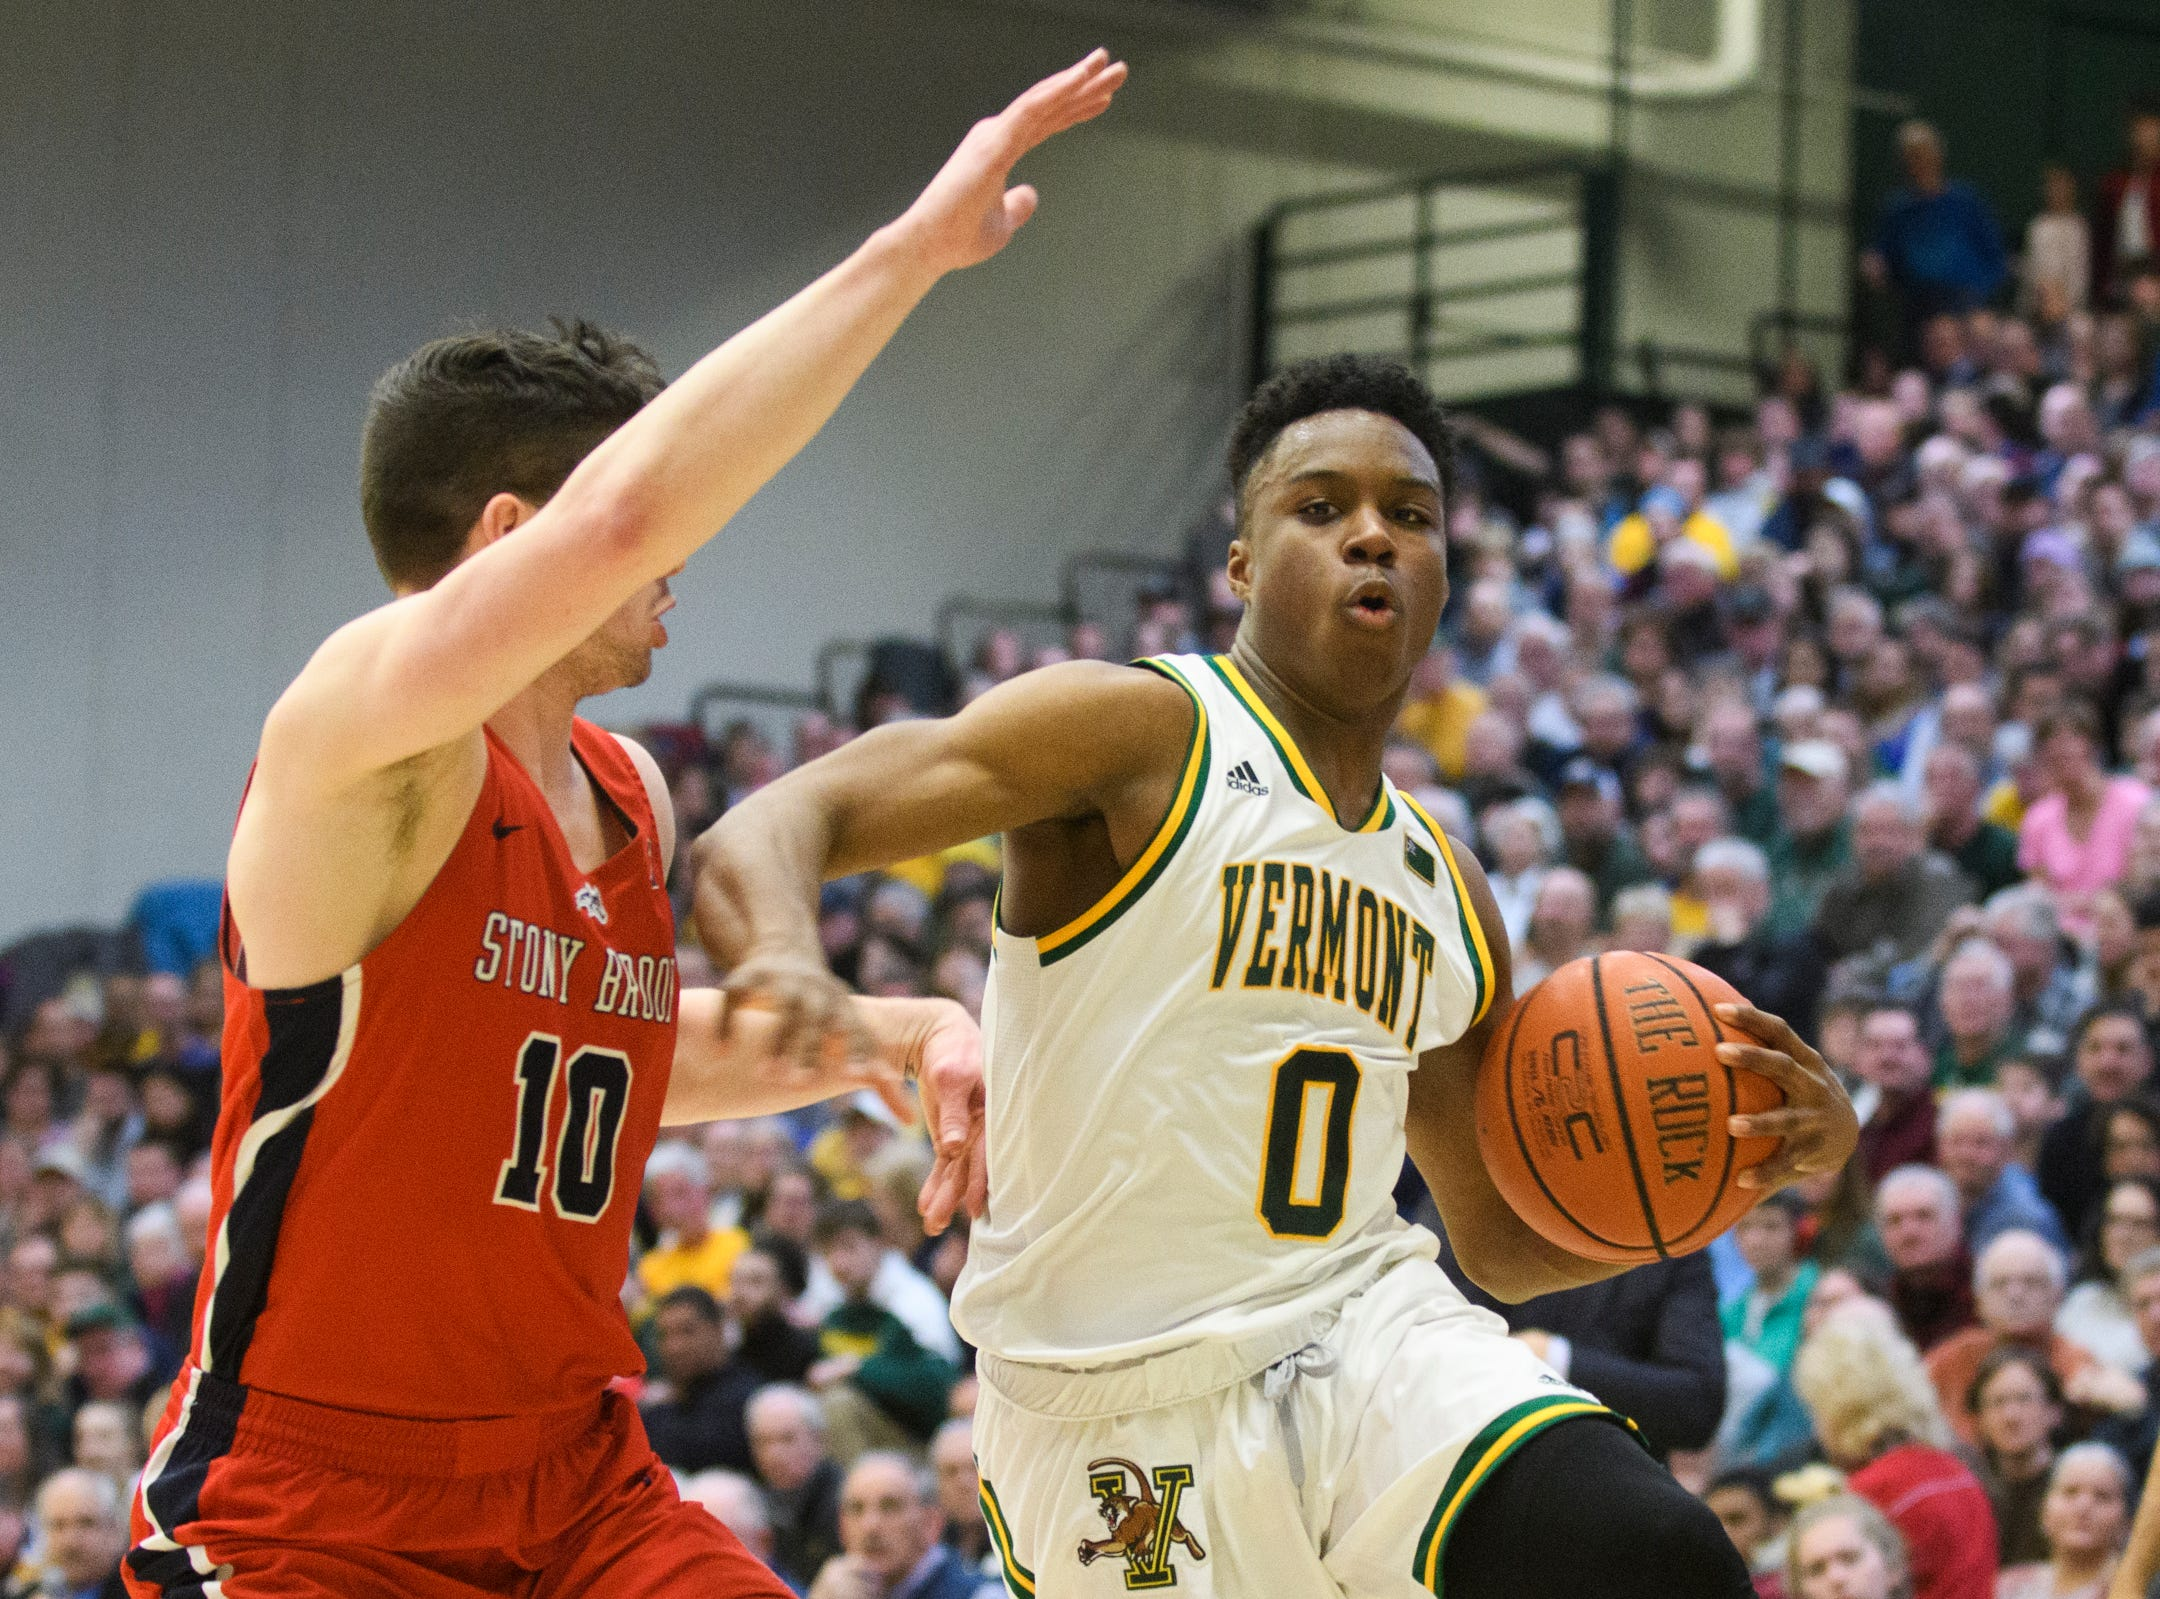 Vermont guard Stef Smith (0) drives to the hoop past Stony Brook's Jordan McKenzie (10) during the men's basketball game between the Stony Brook Seawolves and the Vermont Catamounts at Patrick Gym on Saturday night March 2, 2019 in Burlington, Vermont.